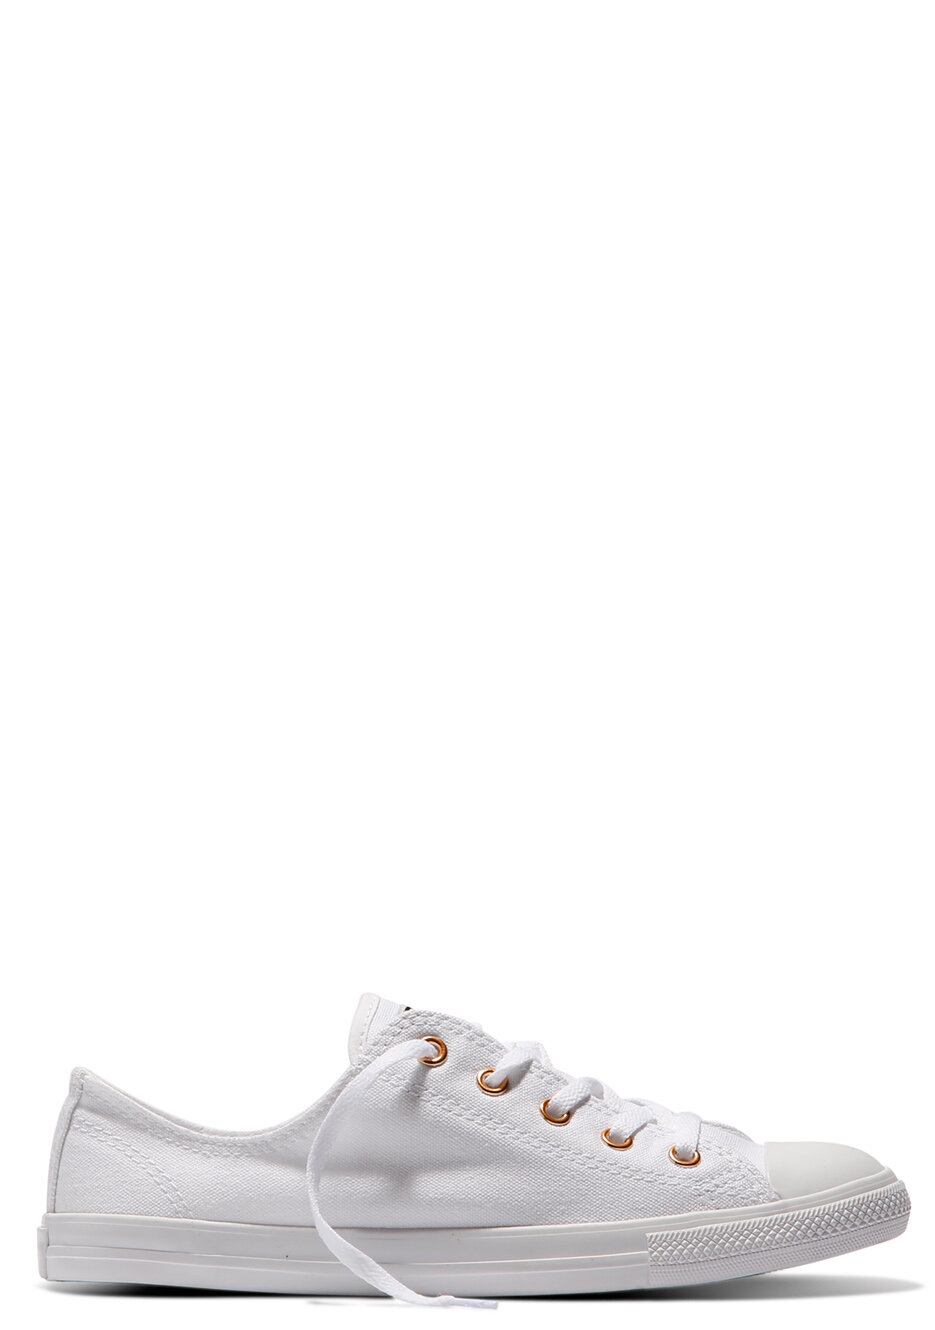 CT DAINTY ROSE GOLD EYELET LOW - Shop